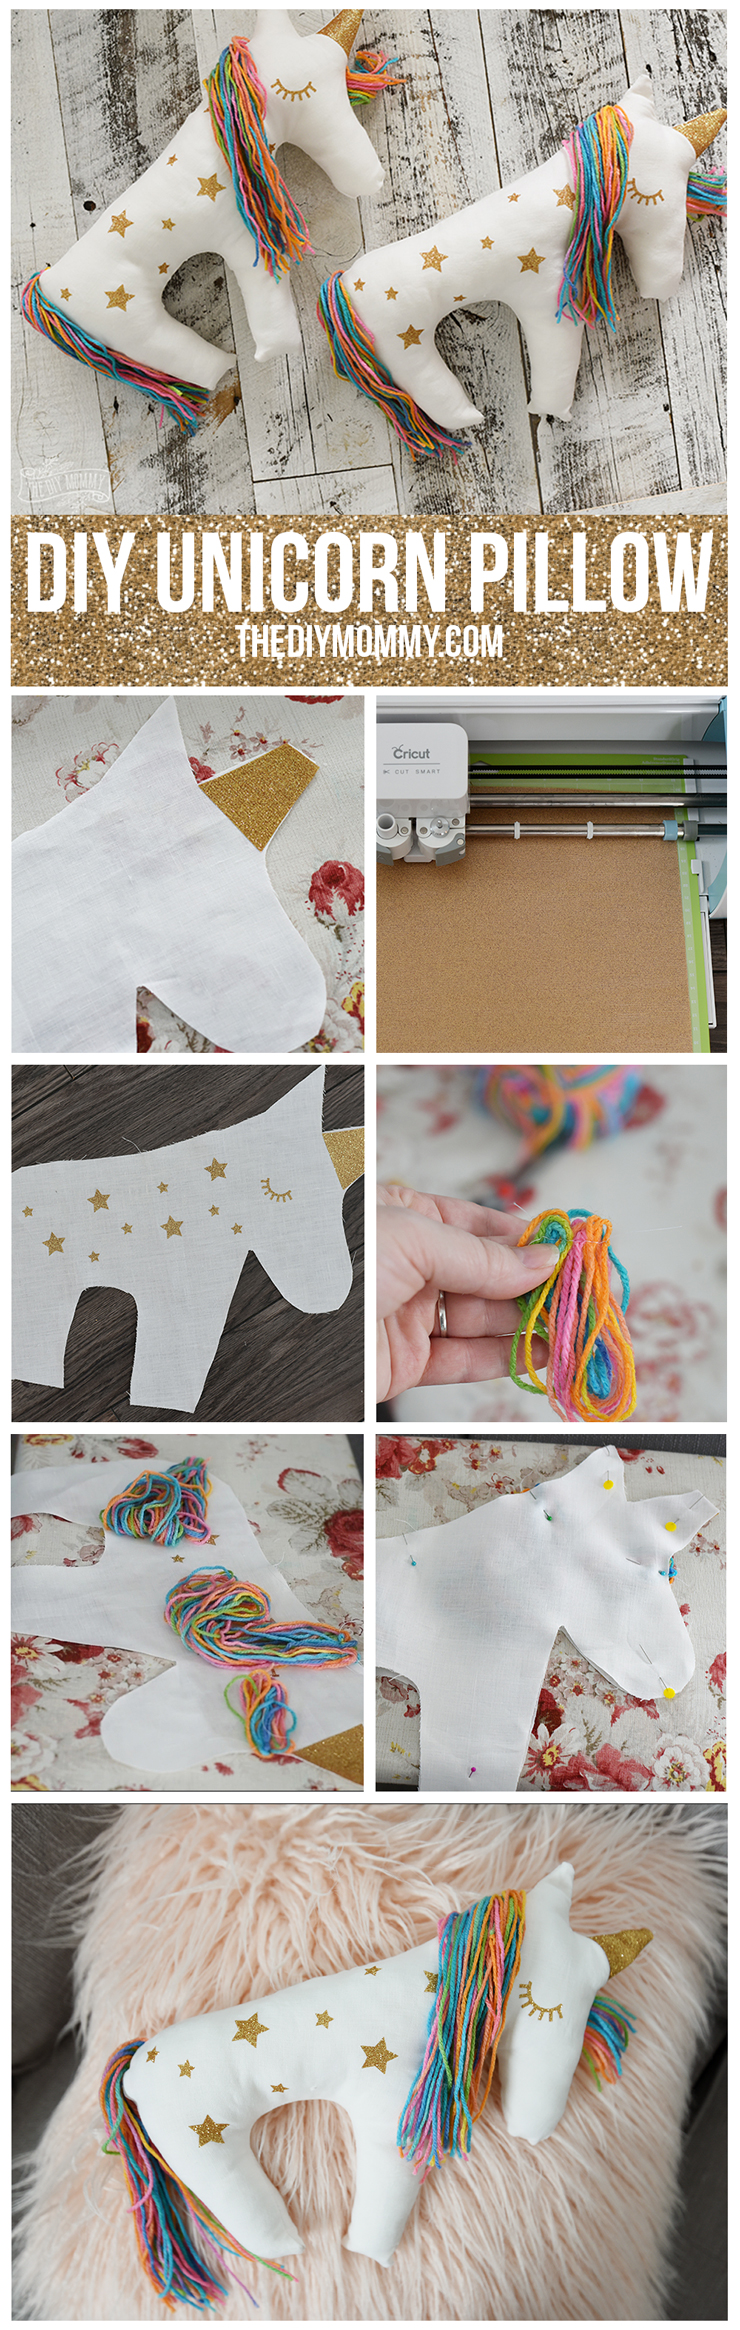 Make a Unicorn Plush Pillow with the Cricut Explore Air